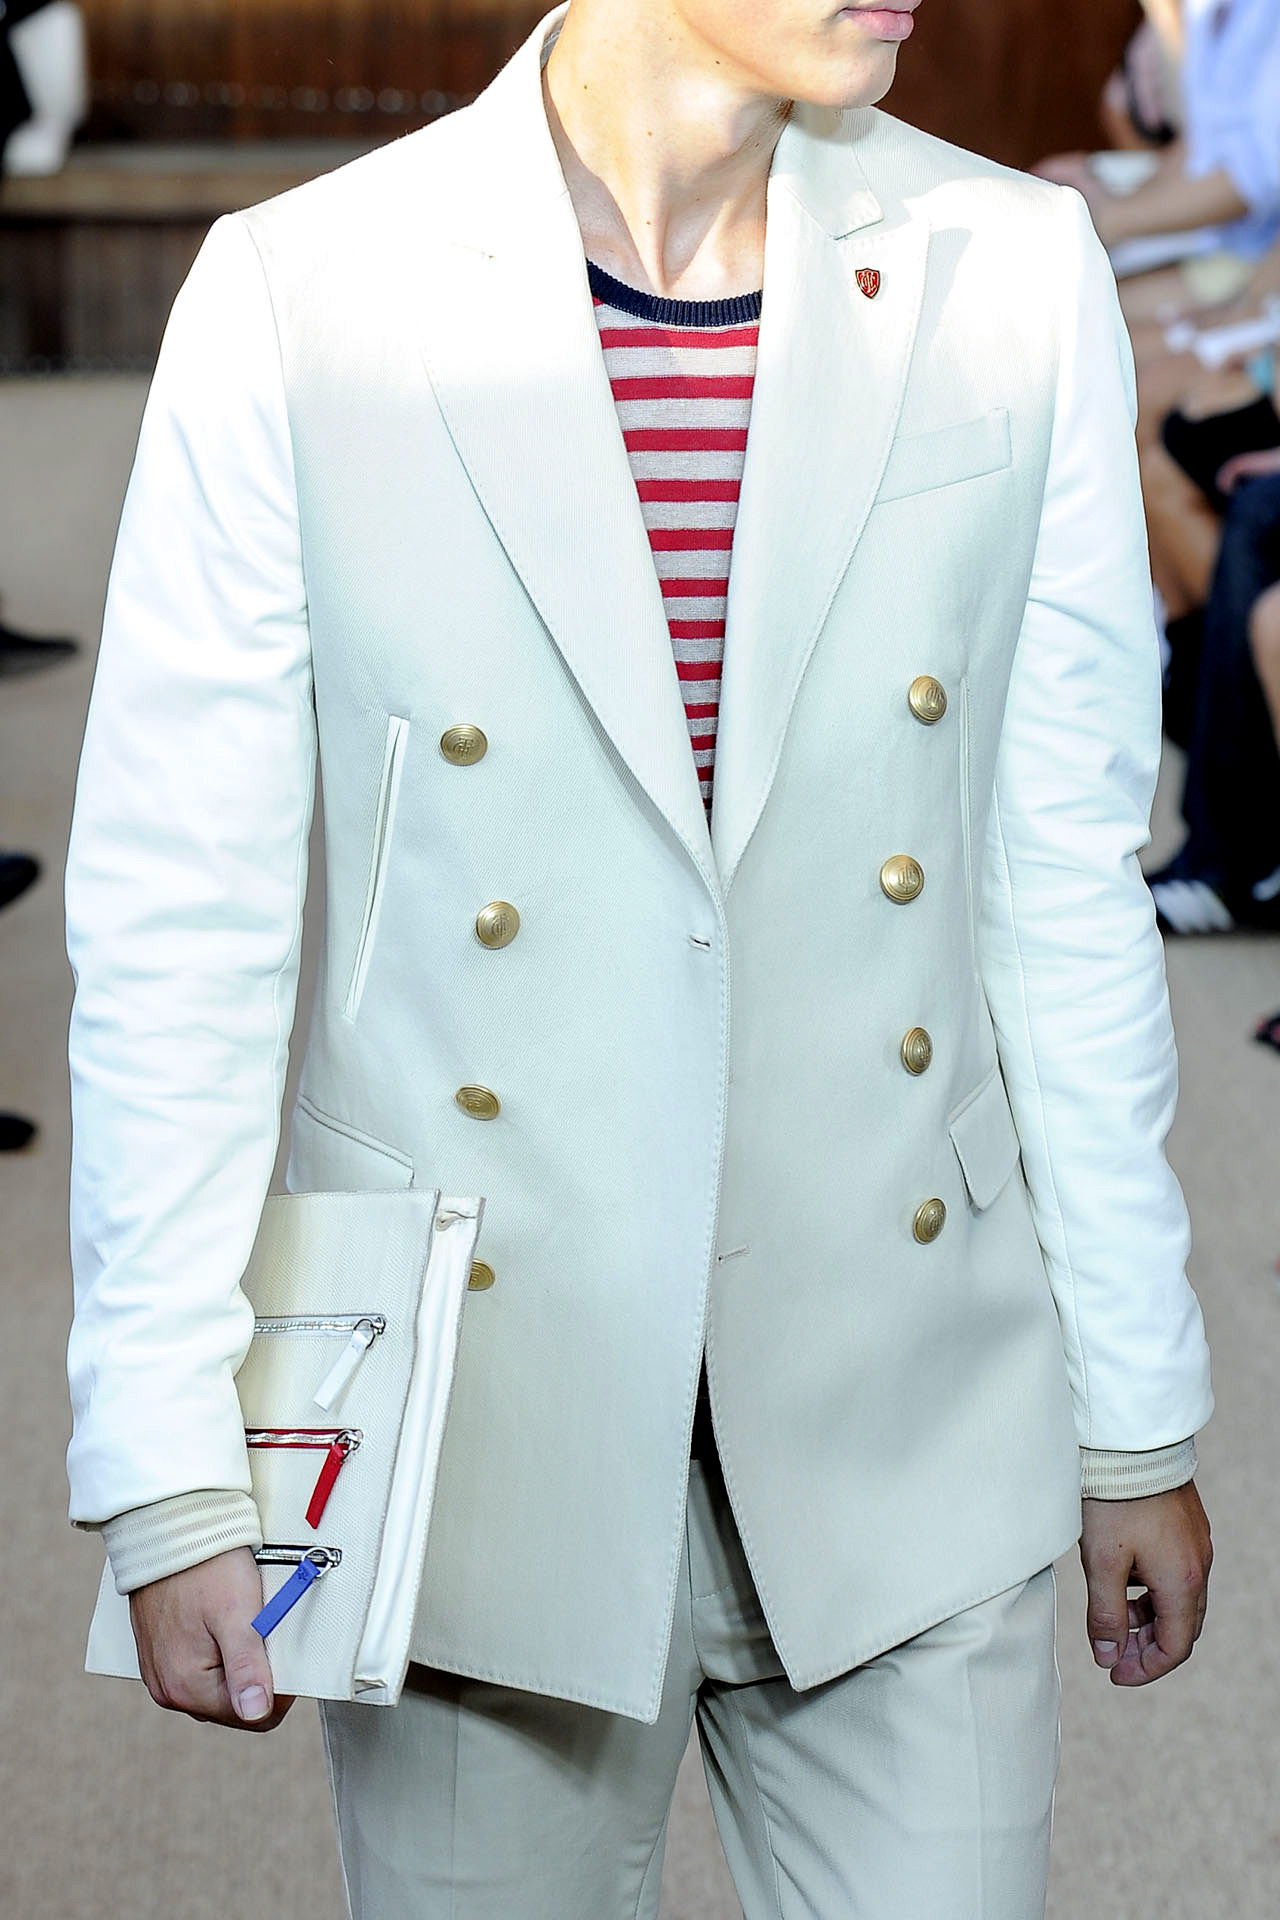 Details at Tommy Hilfiger Menswear Spring/Summer 2013